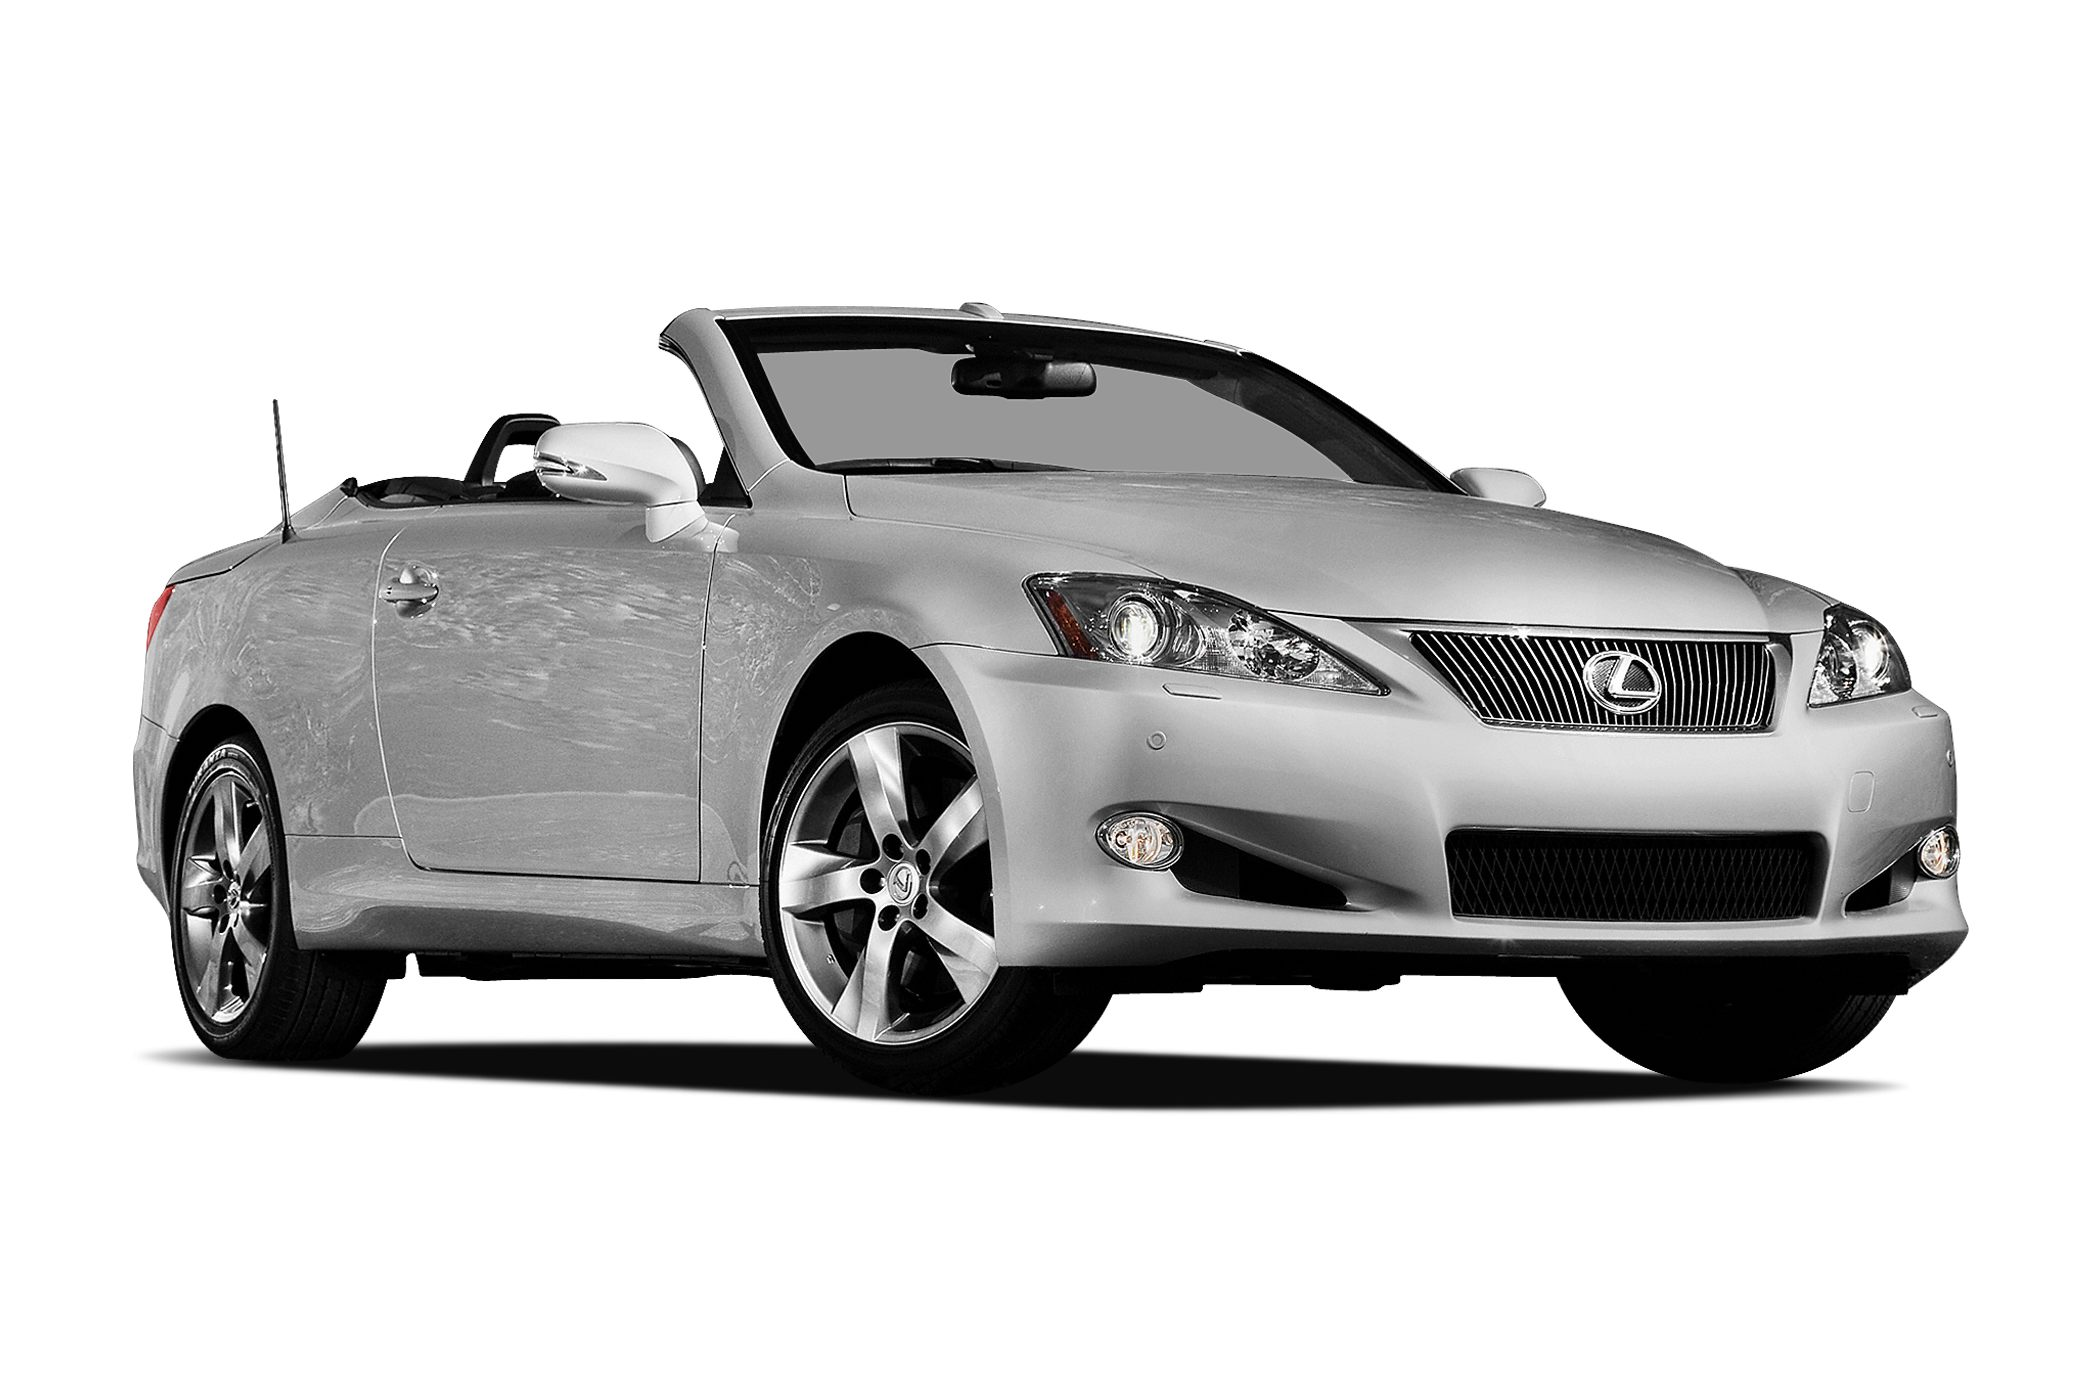 2010 Lexus IS 350C Convertible for sale in Darlington for $0 with 65,049 miles